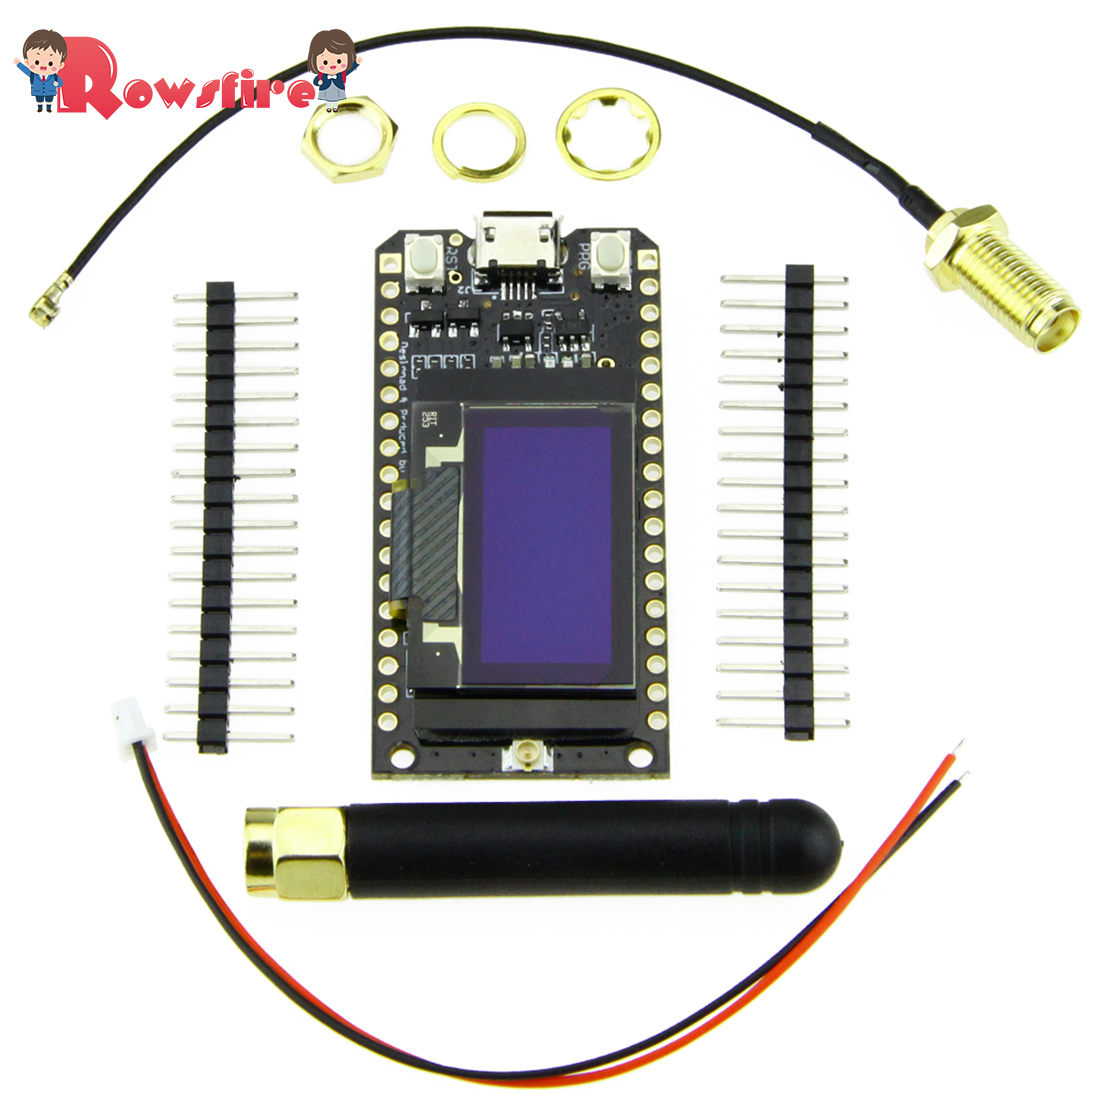 LoRa 868MHz/915MHz ESP32 0.96-Inch Blue Screen OLED Bluetooth Wifi Module With Cable For Arduino